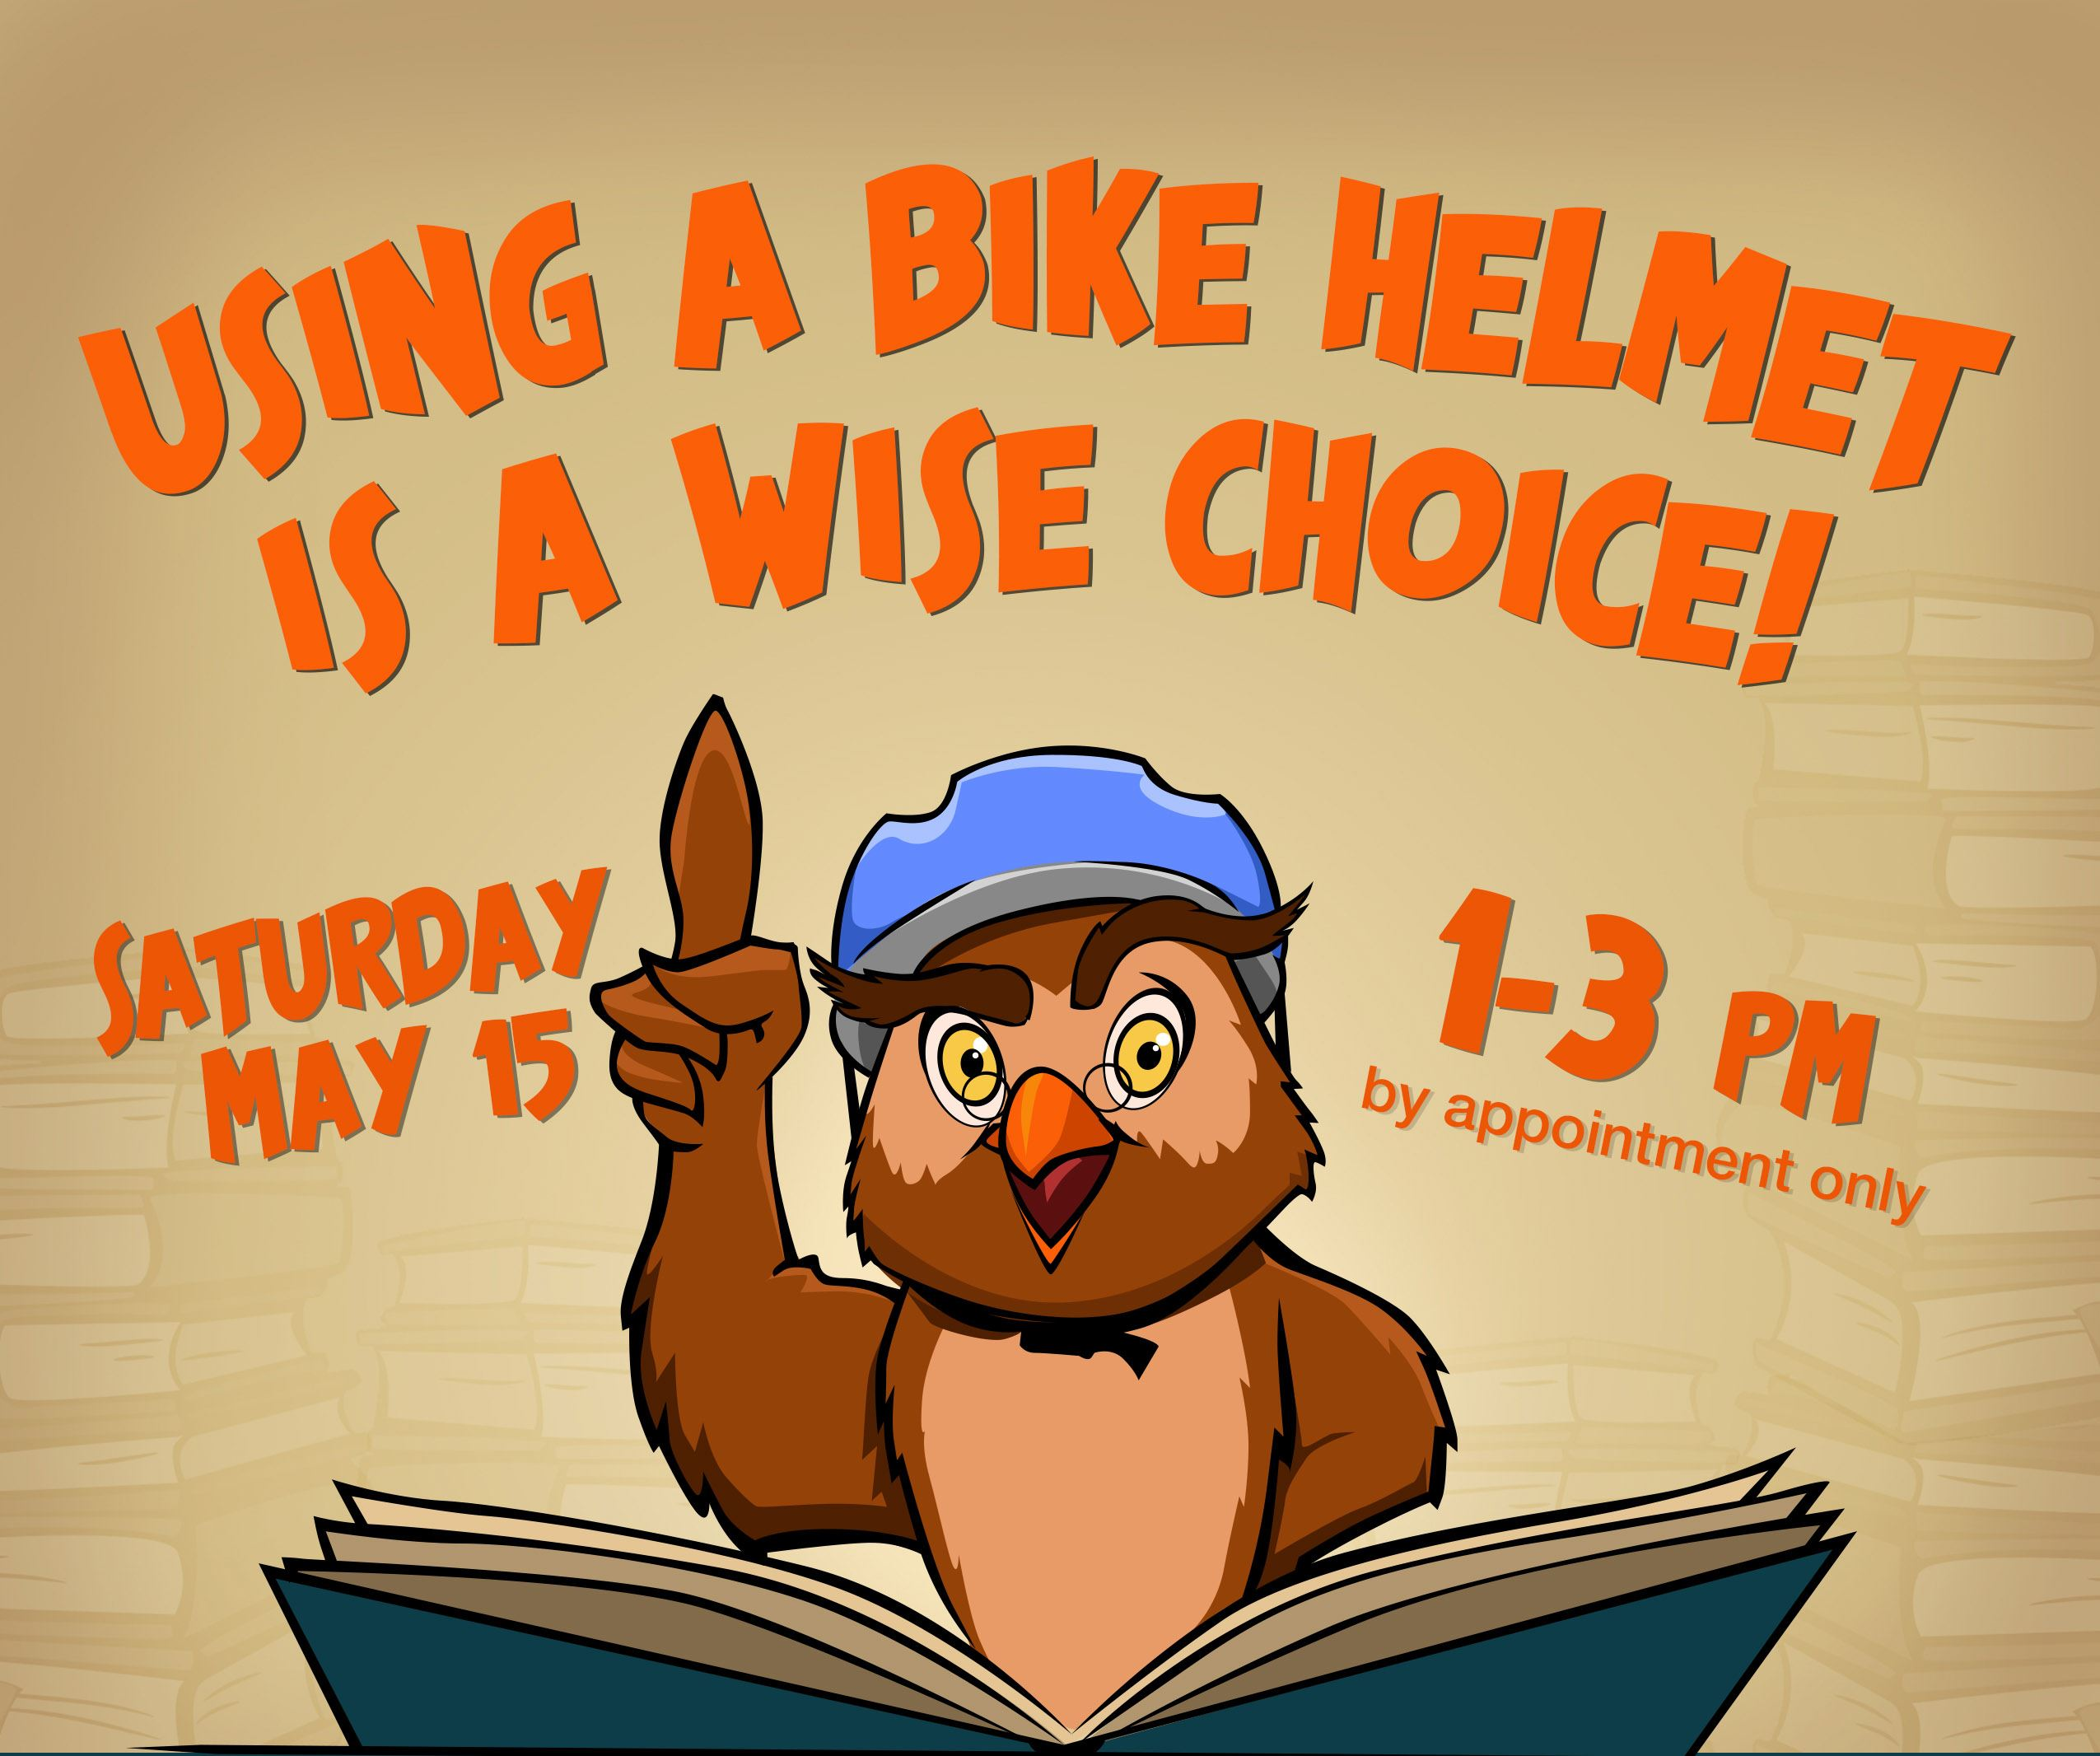 Drawing of an owl reading a book: Using a bike helmet is a wise choice! Saturday May 15, 1 to 3 pm